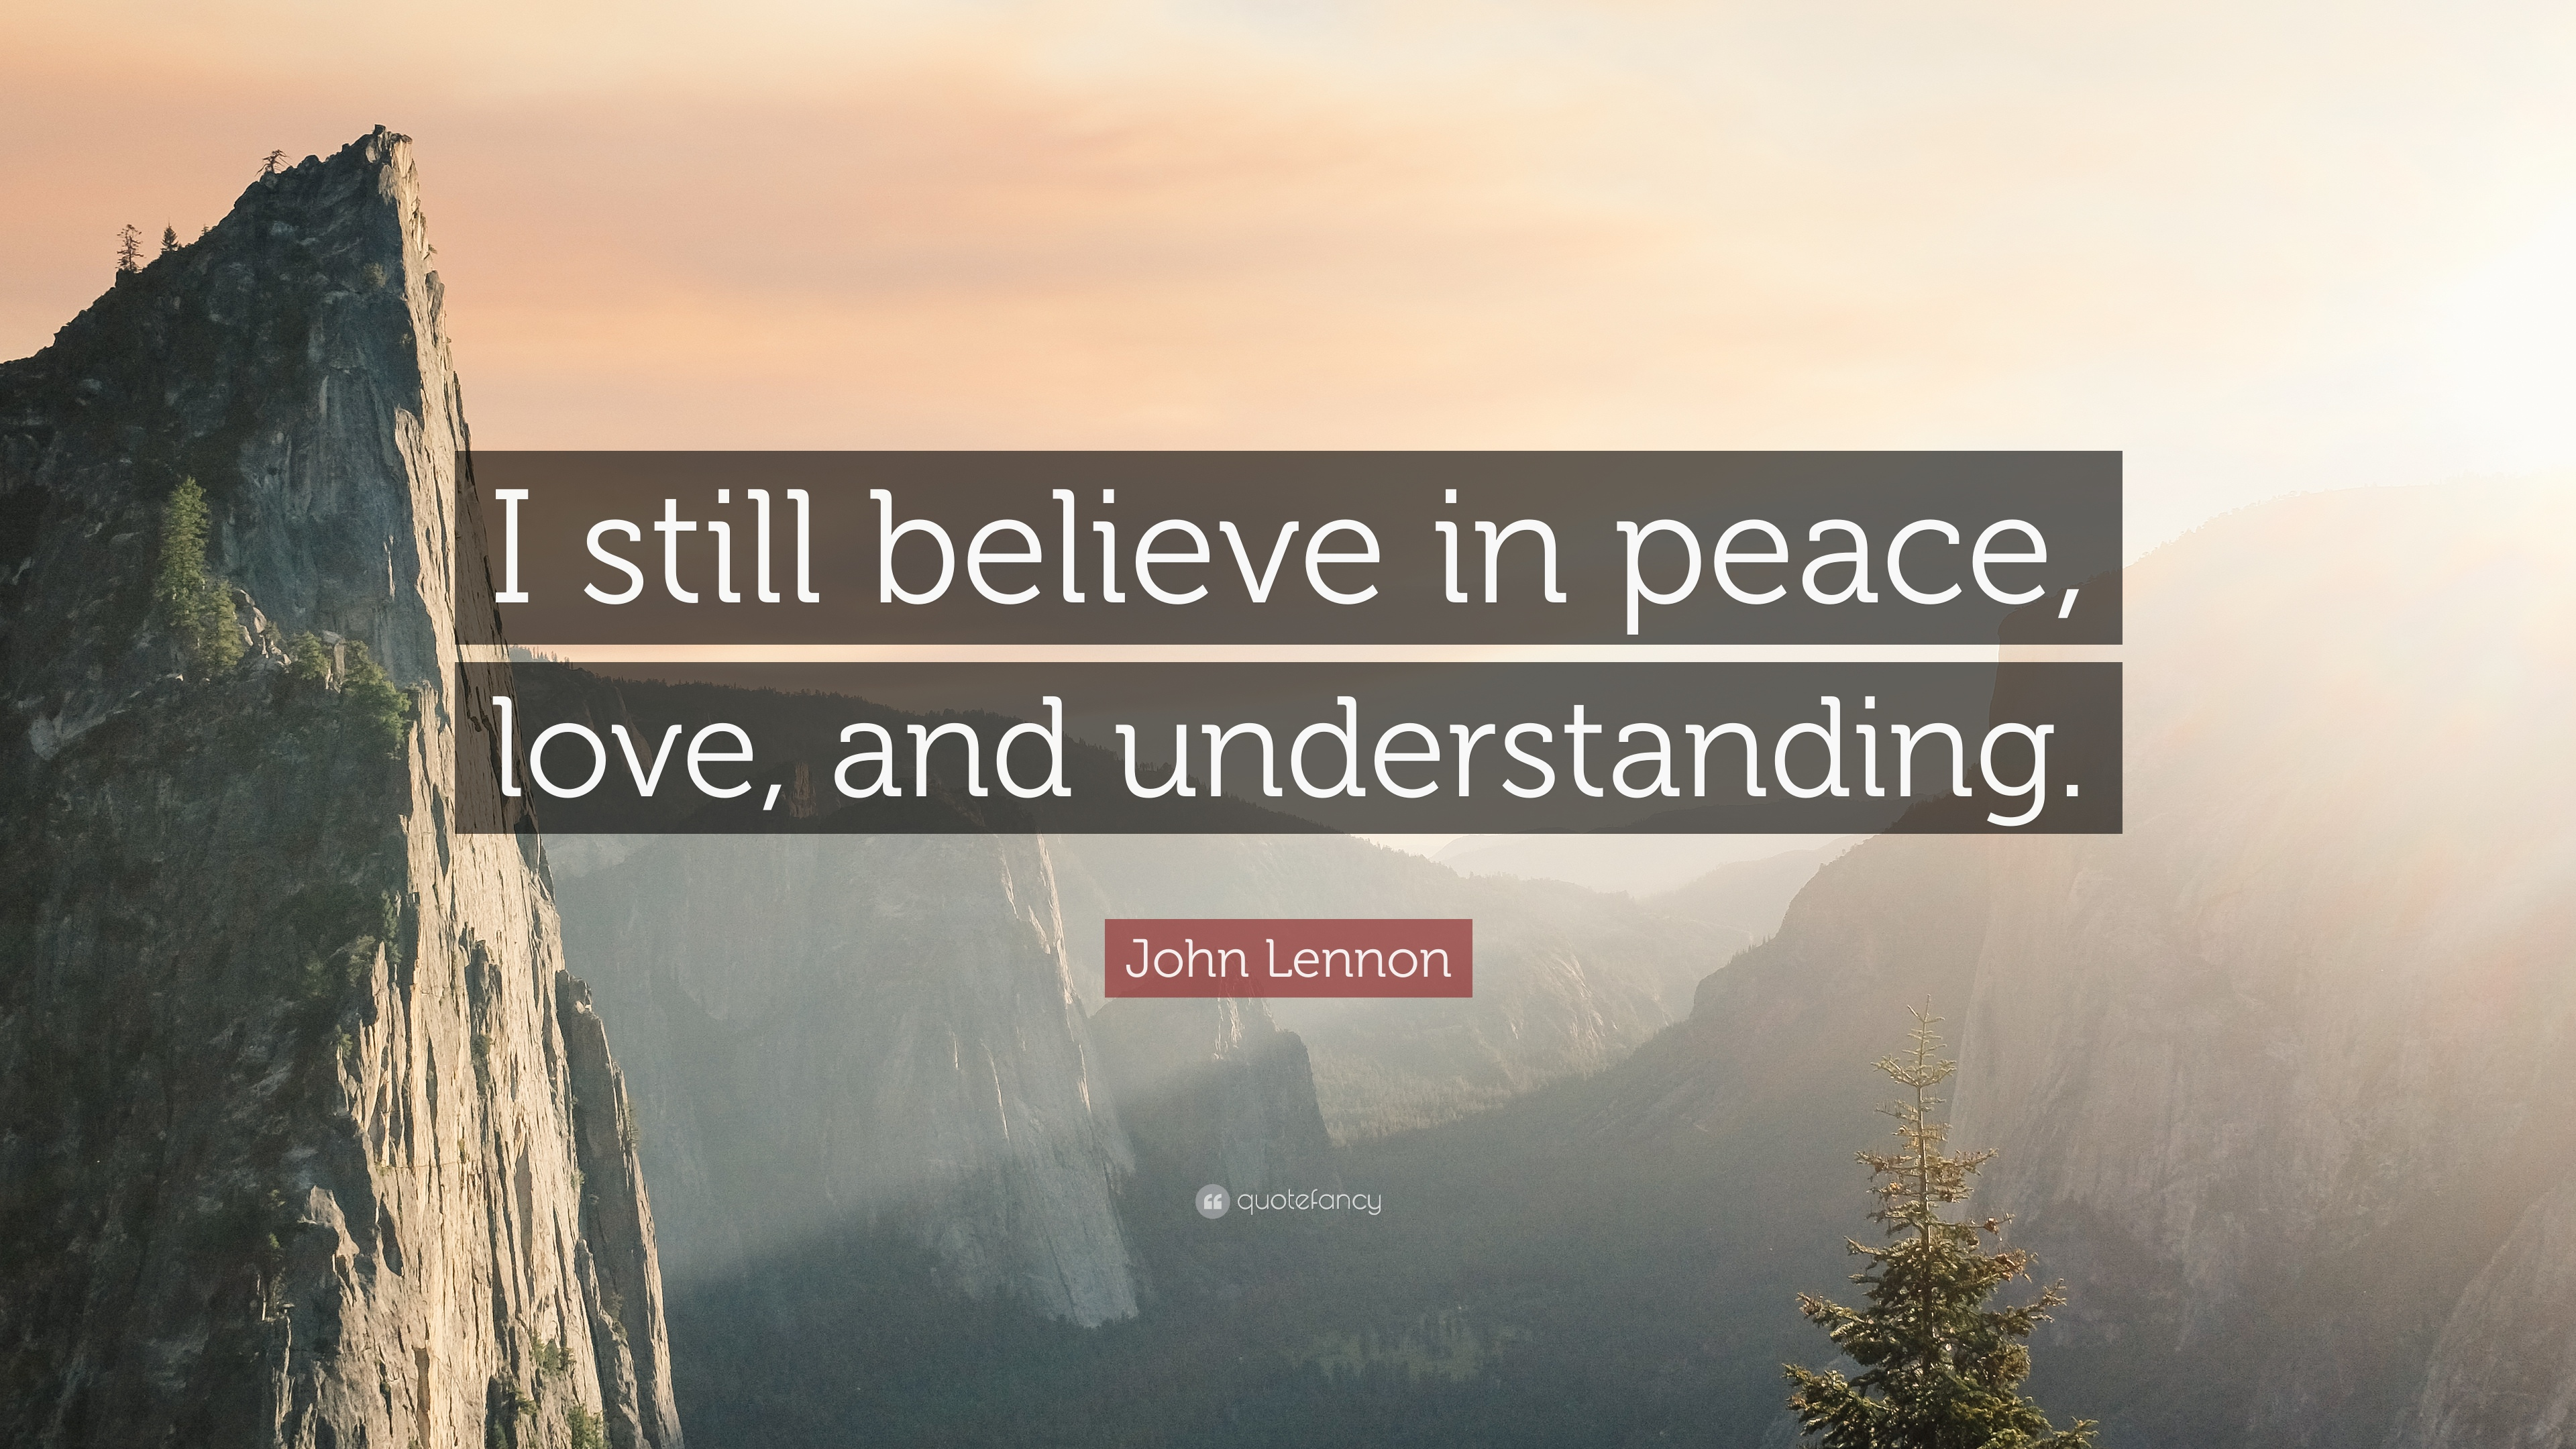 John Lennon Quotes (100 Wallpapers)